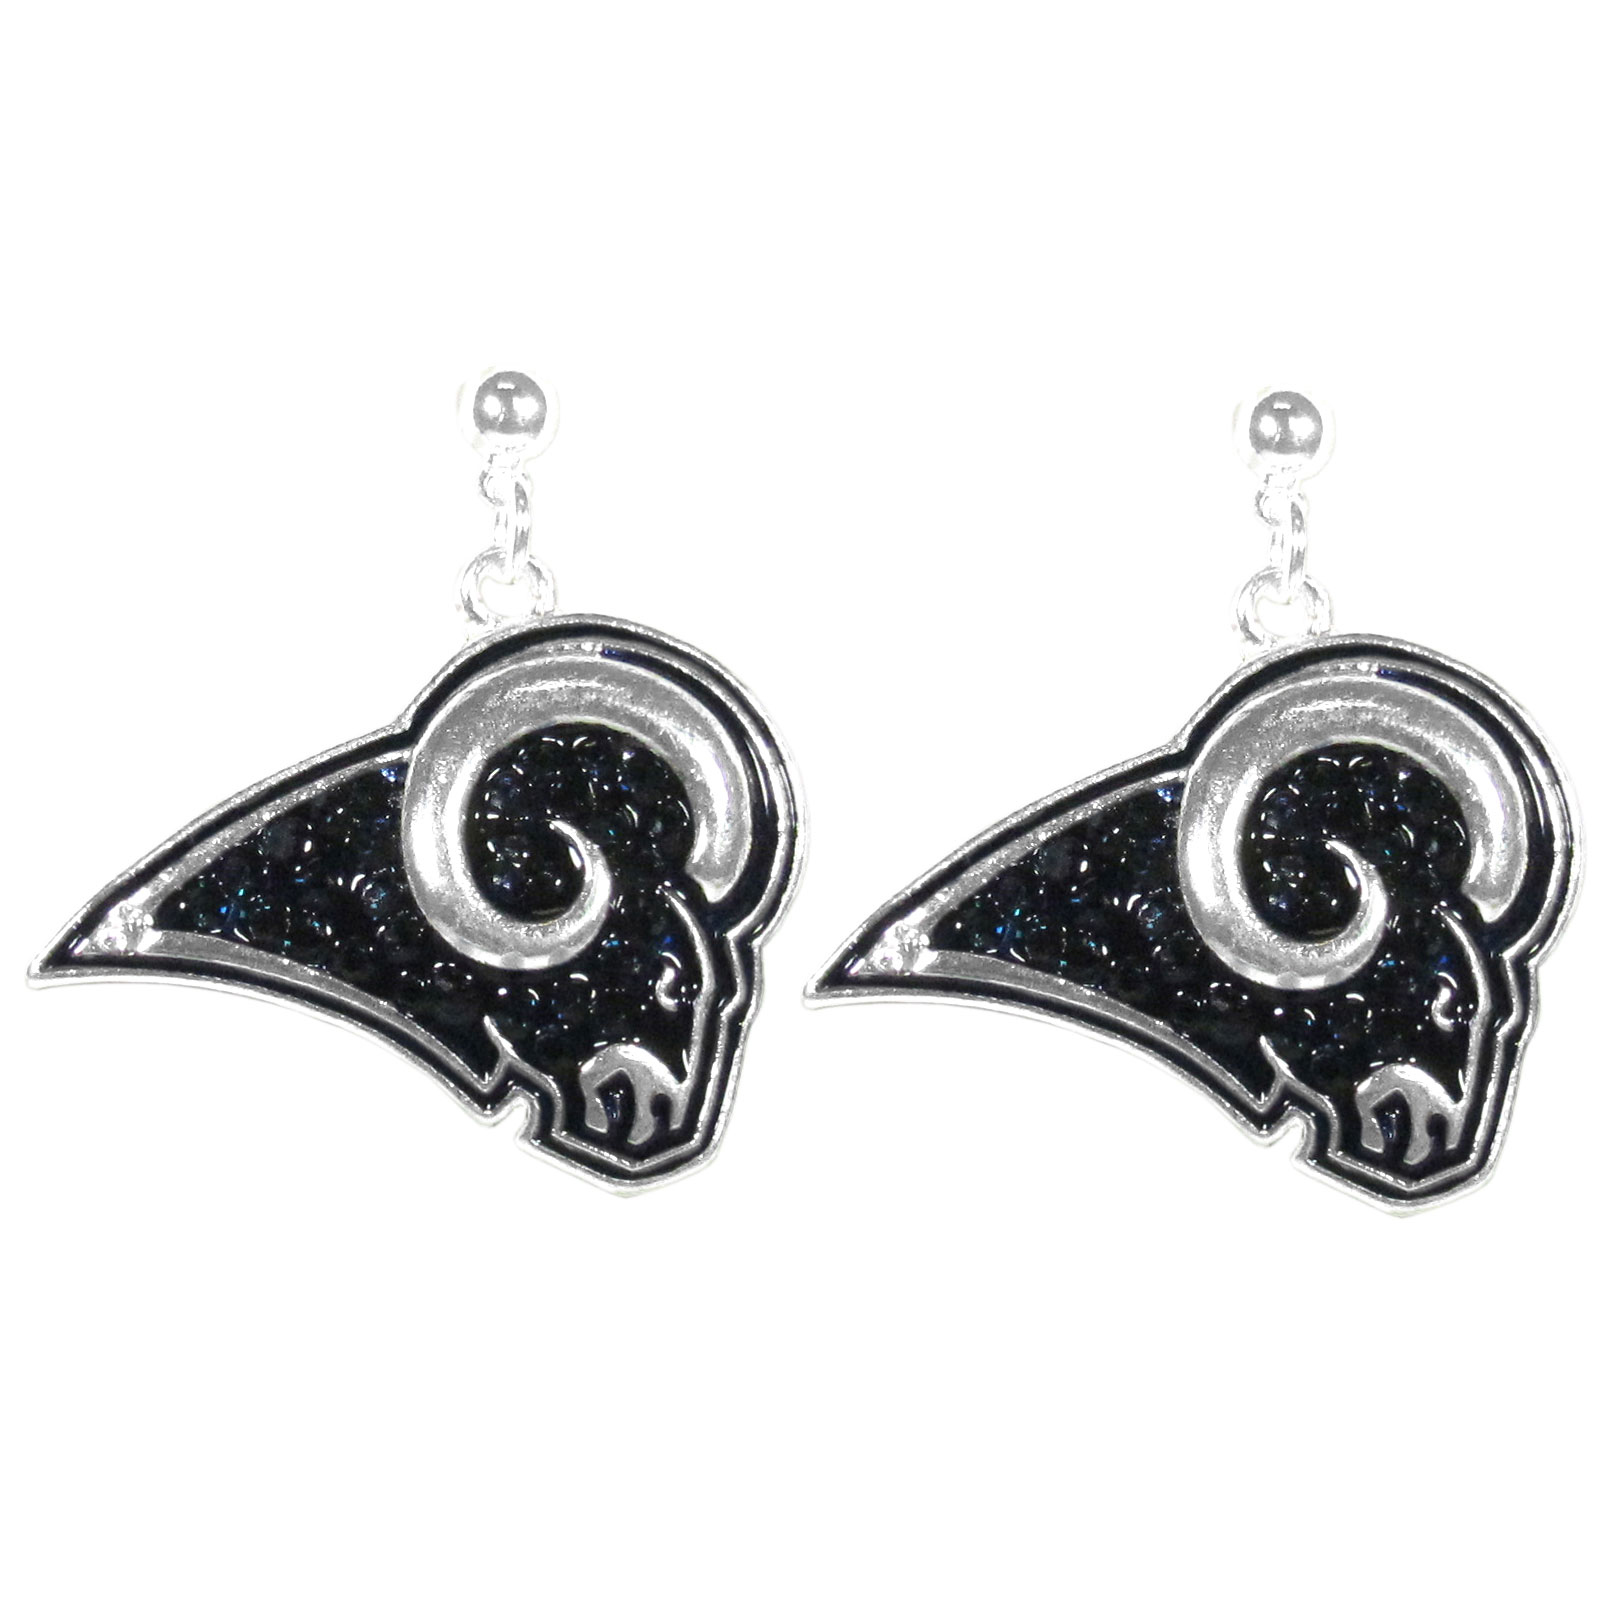 Los Angeles Rams Crystal Stud Earrings - These sporty stud earrings have beautiful crystal enlaided Los Angeles Rams charms that hang from the stud posts so that you have the best of both the dangle earring style with the comfort of the secure stud posts. The trendy charms are silver plated with colorful detail and are absolutely covered in team colored charms. The classy earrings feature hypo-allergenic posts.